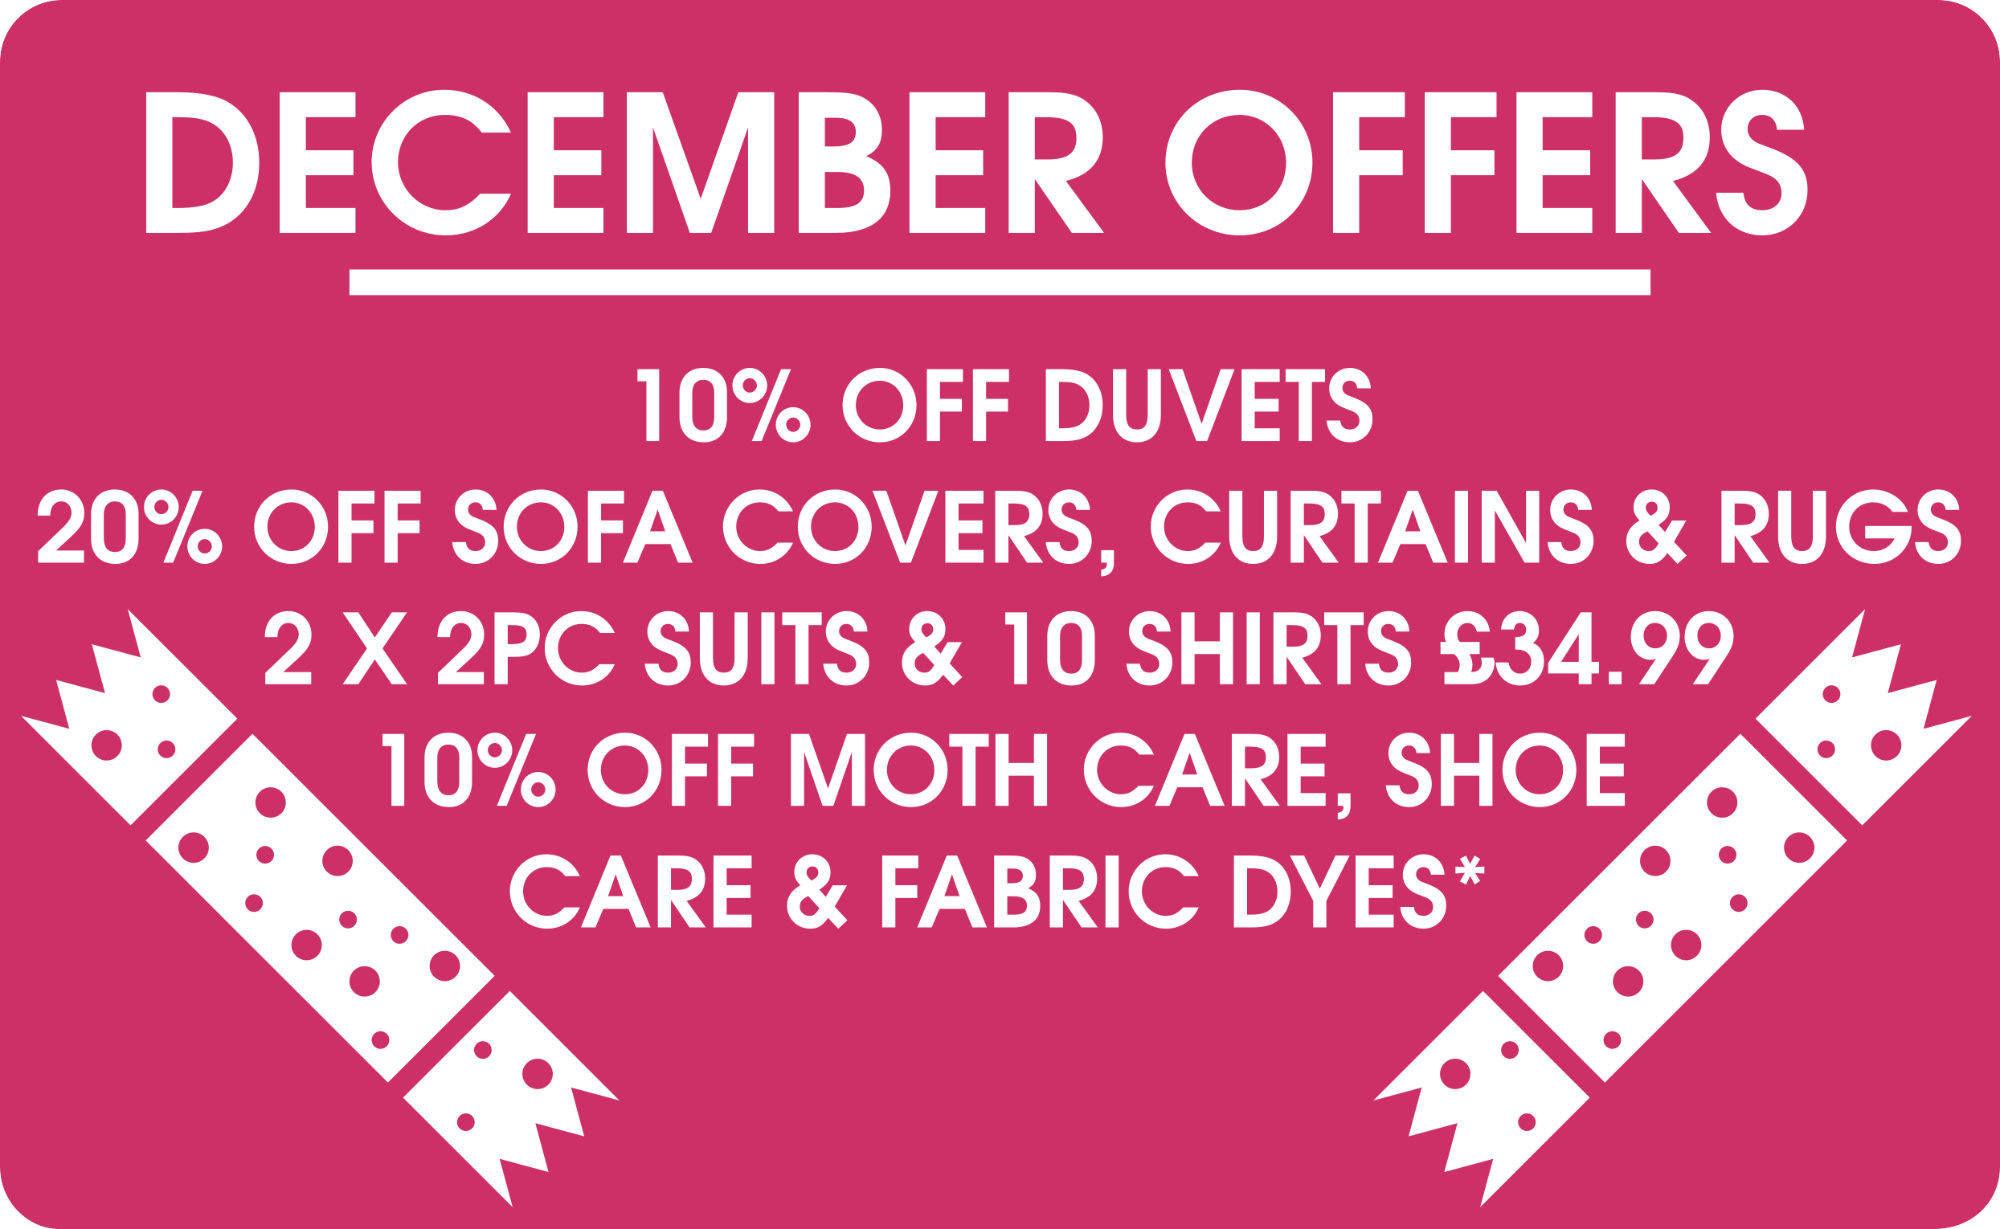 December Offers Offers- Pearls Drycleaners, Acton